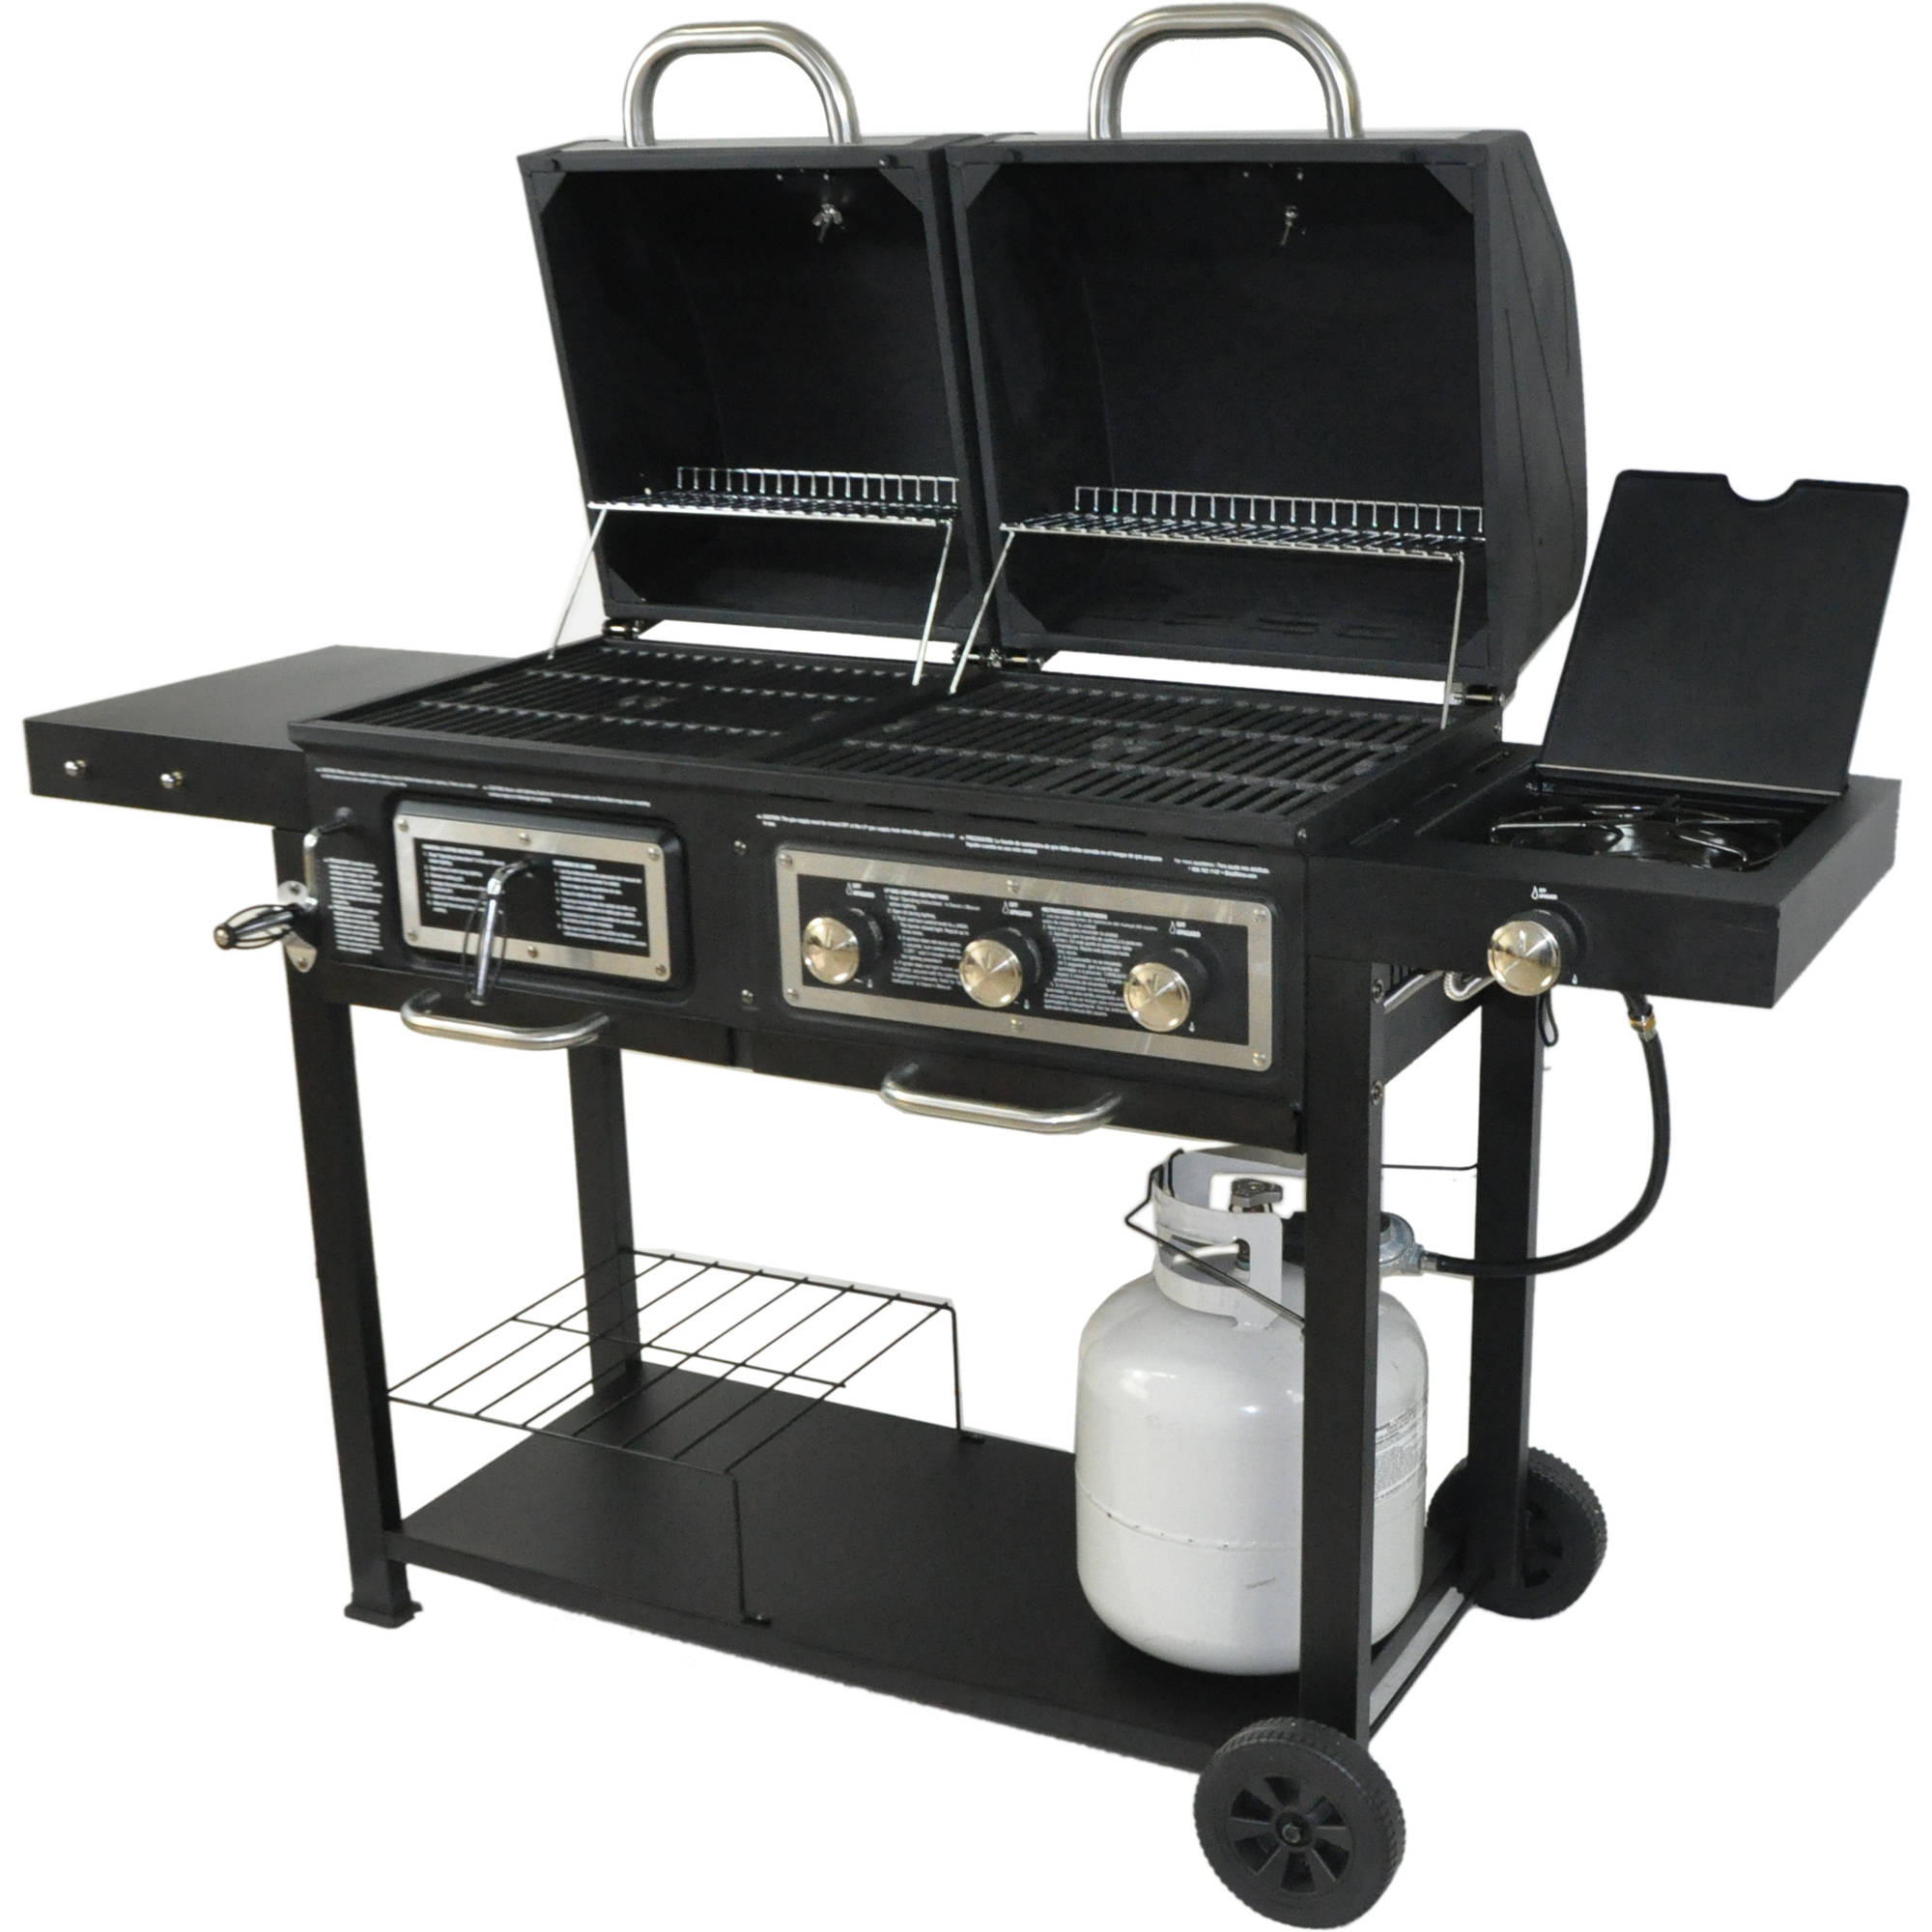 Gas and charcoal bo grill